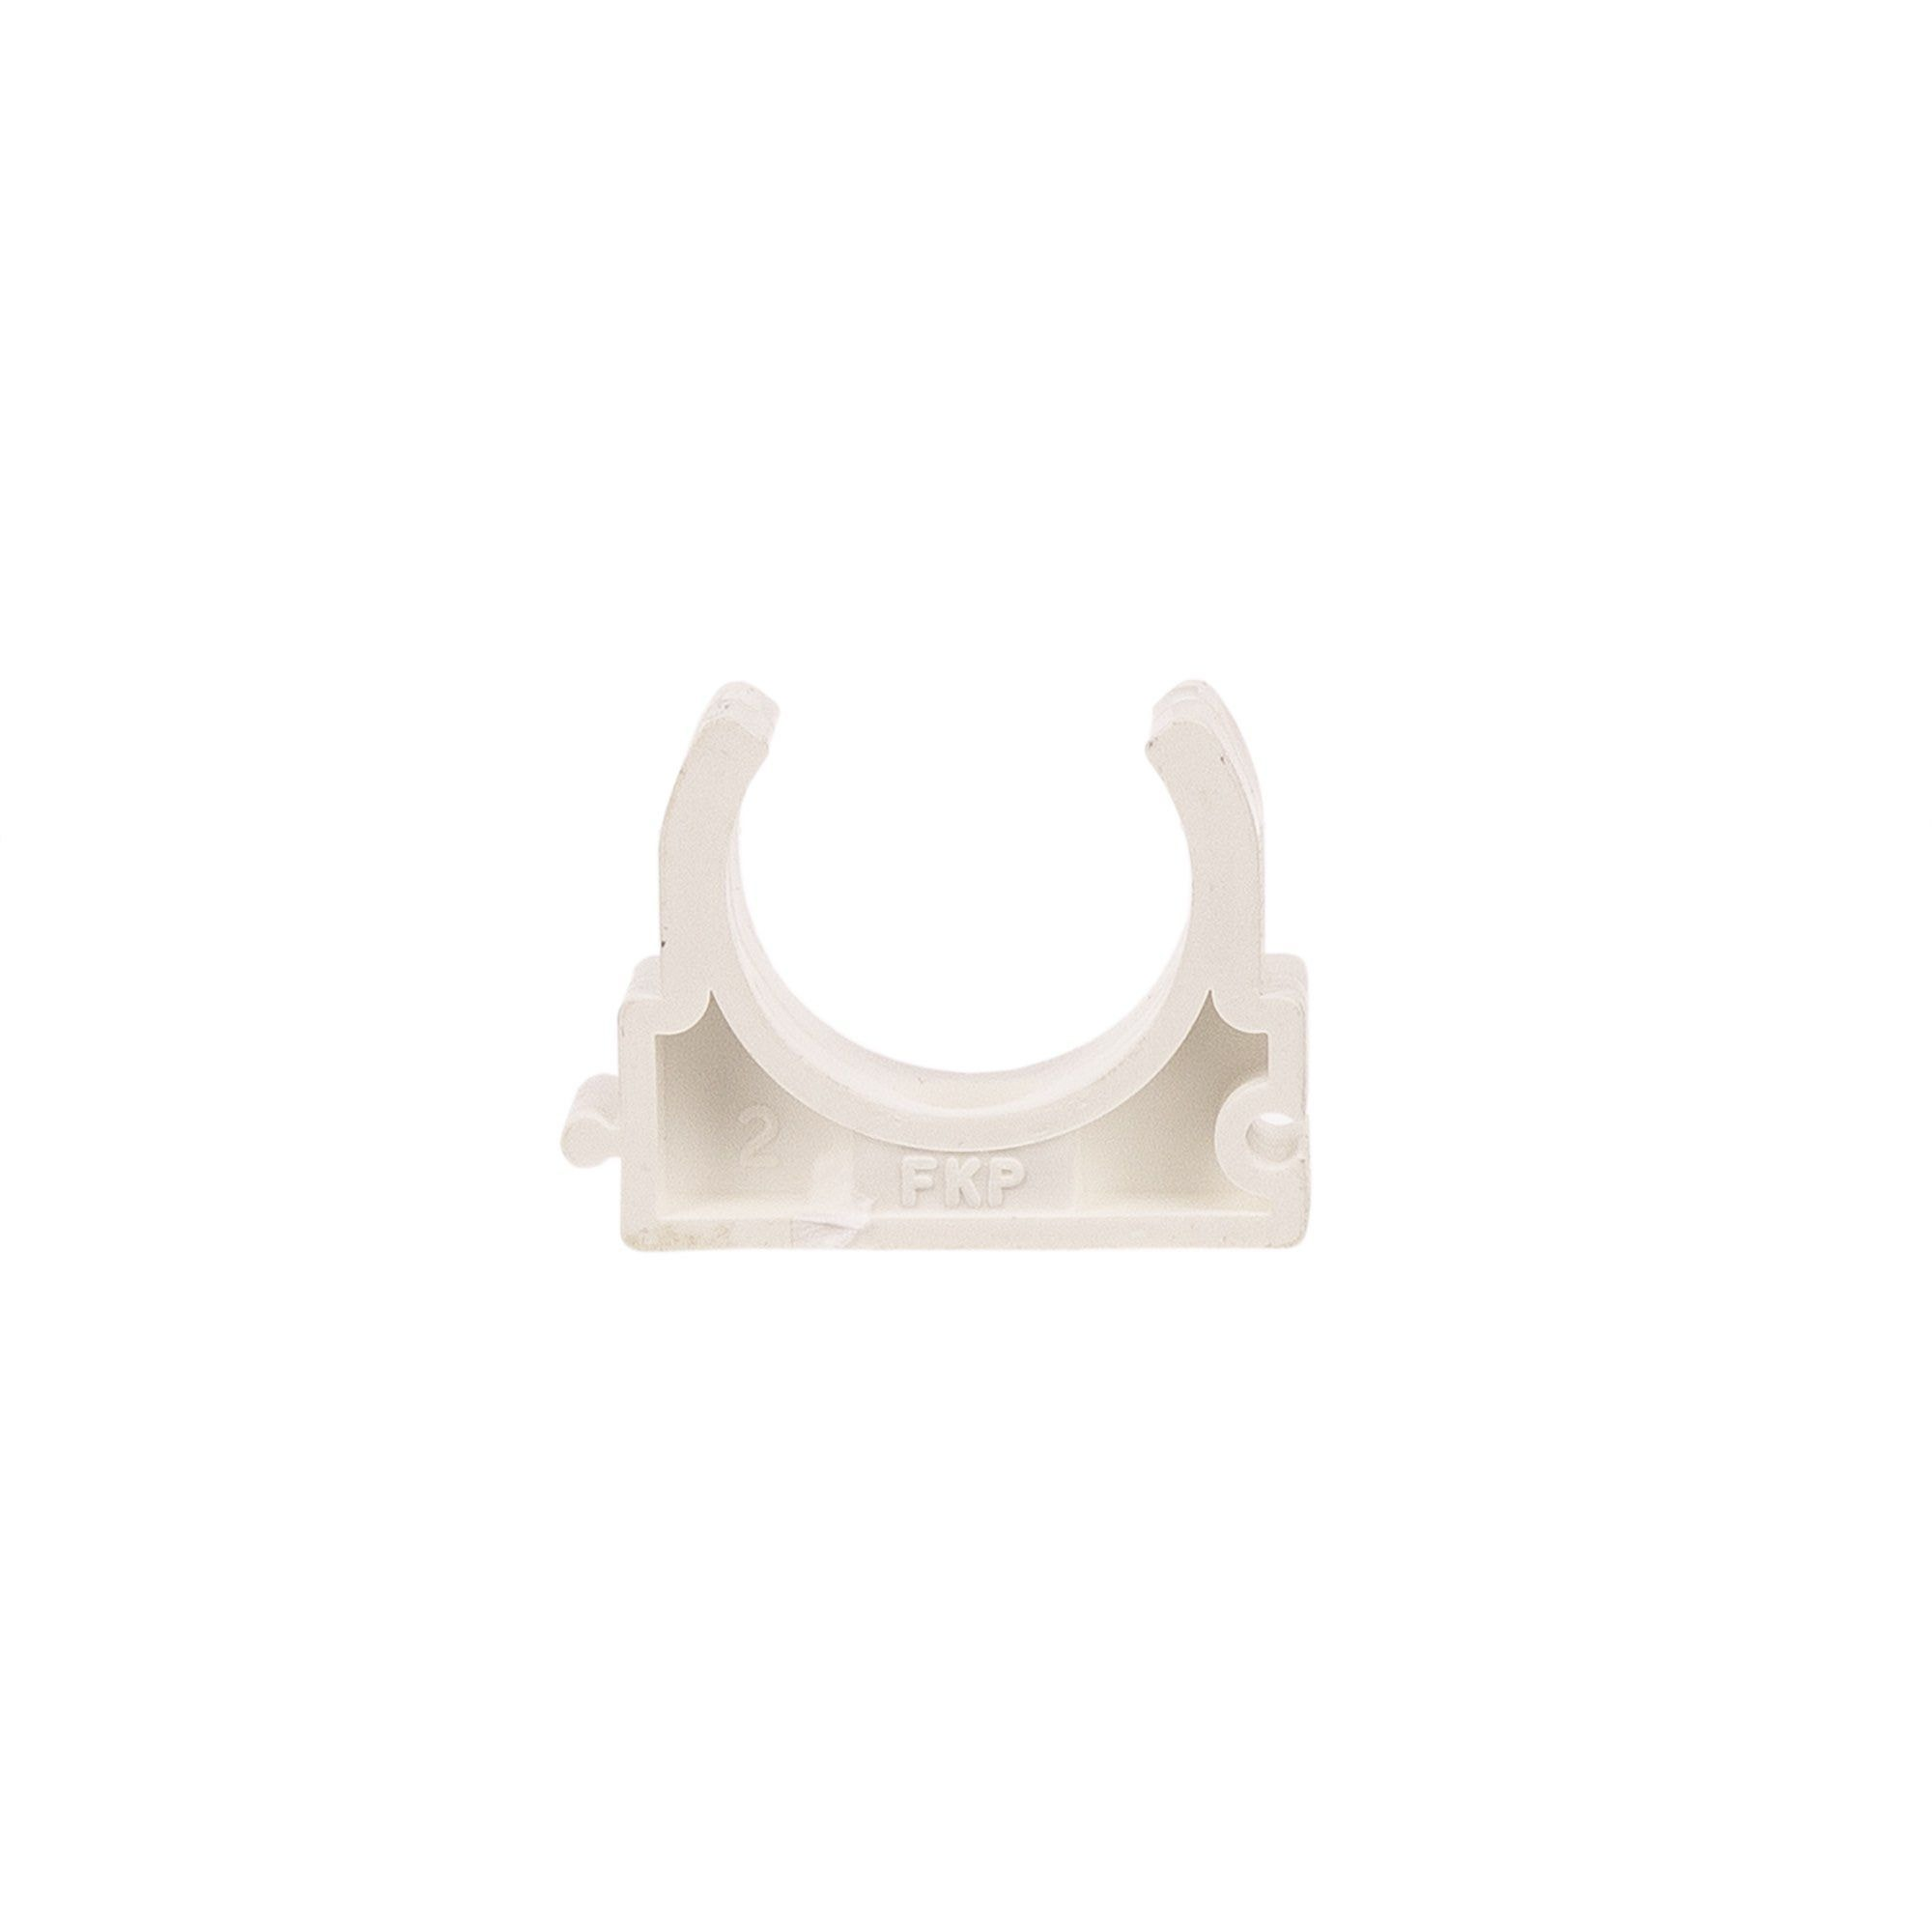 Clema simpla PPR 20 mm